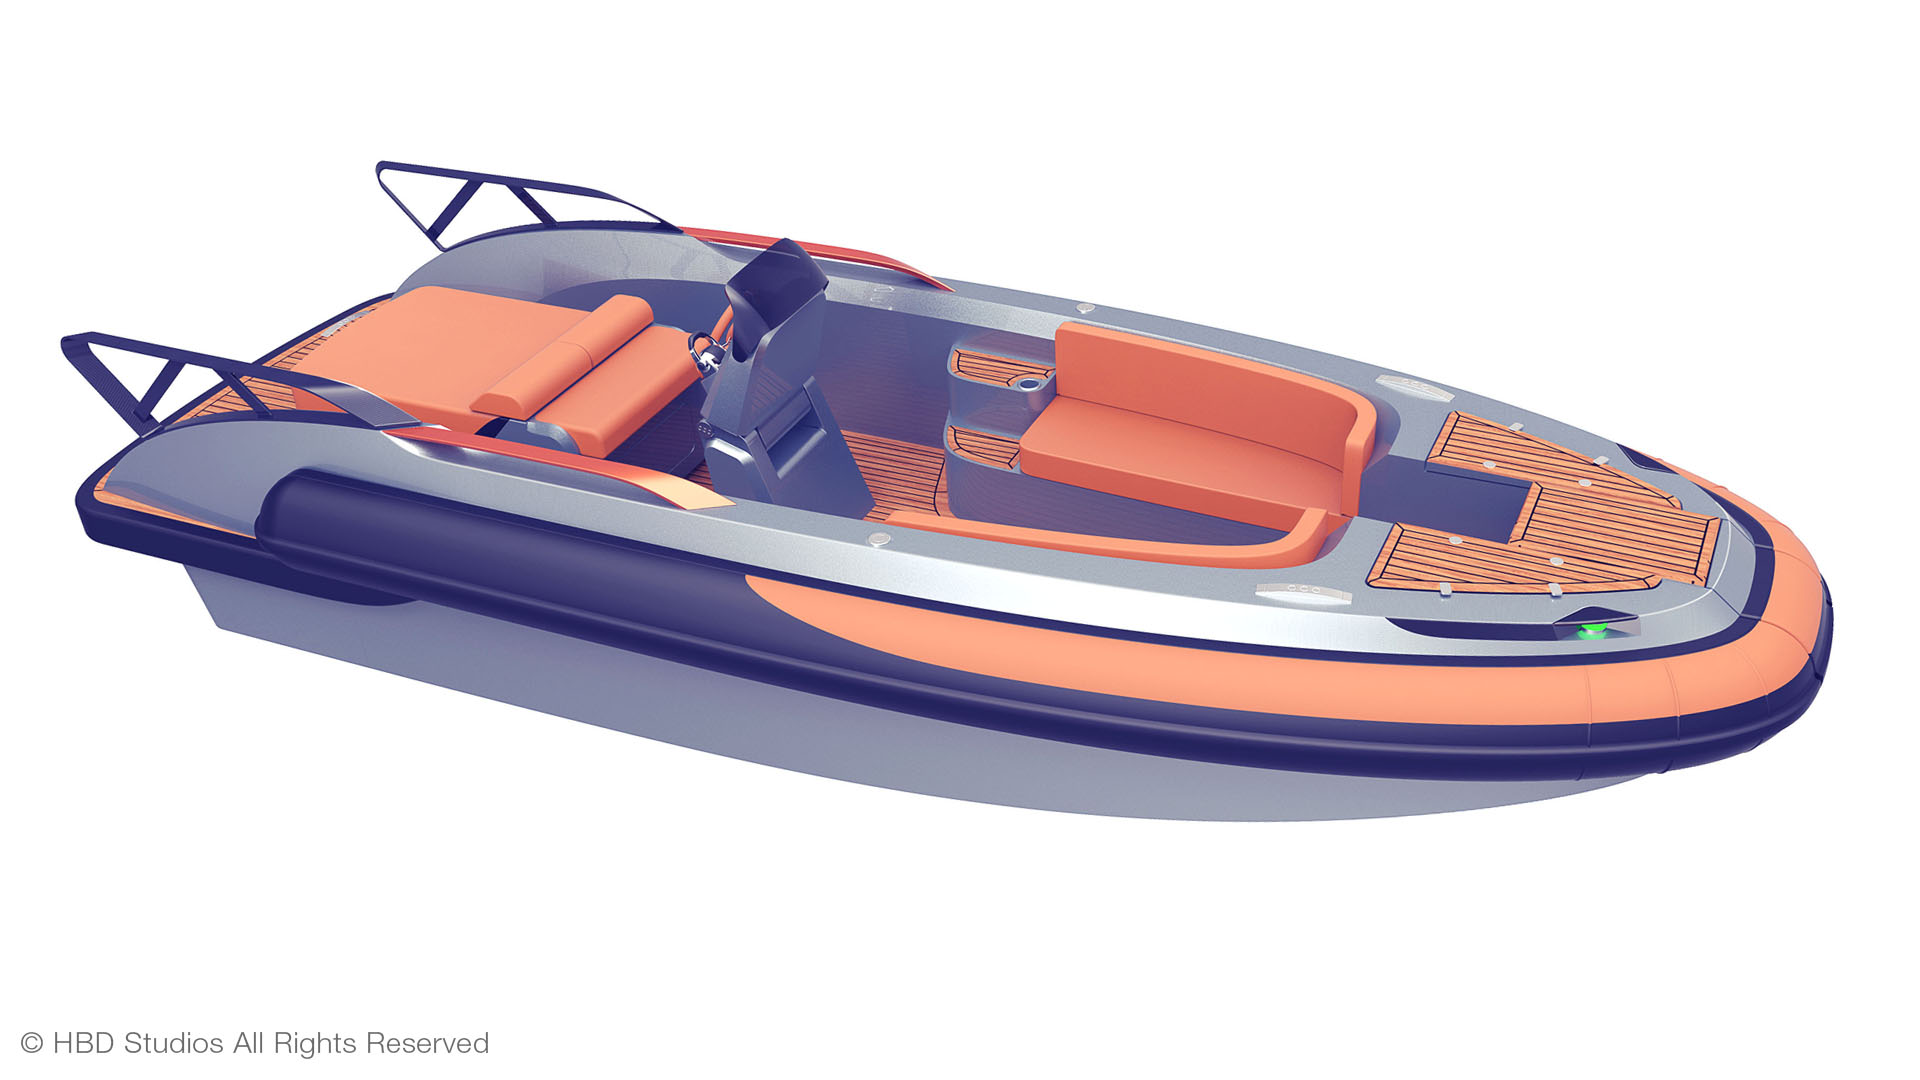 CC LINE superyacht tender, central console boat, RIB tender, yacht design by Hamid Bekradi, HBD Studios